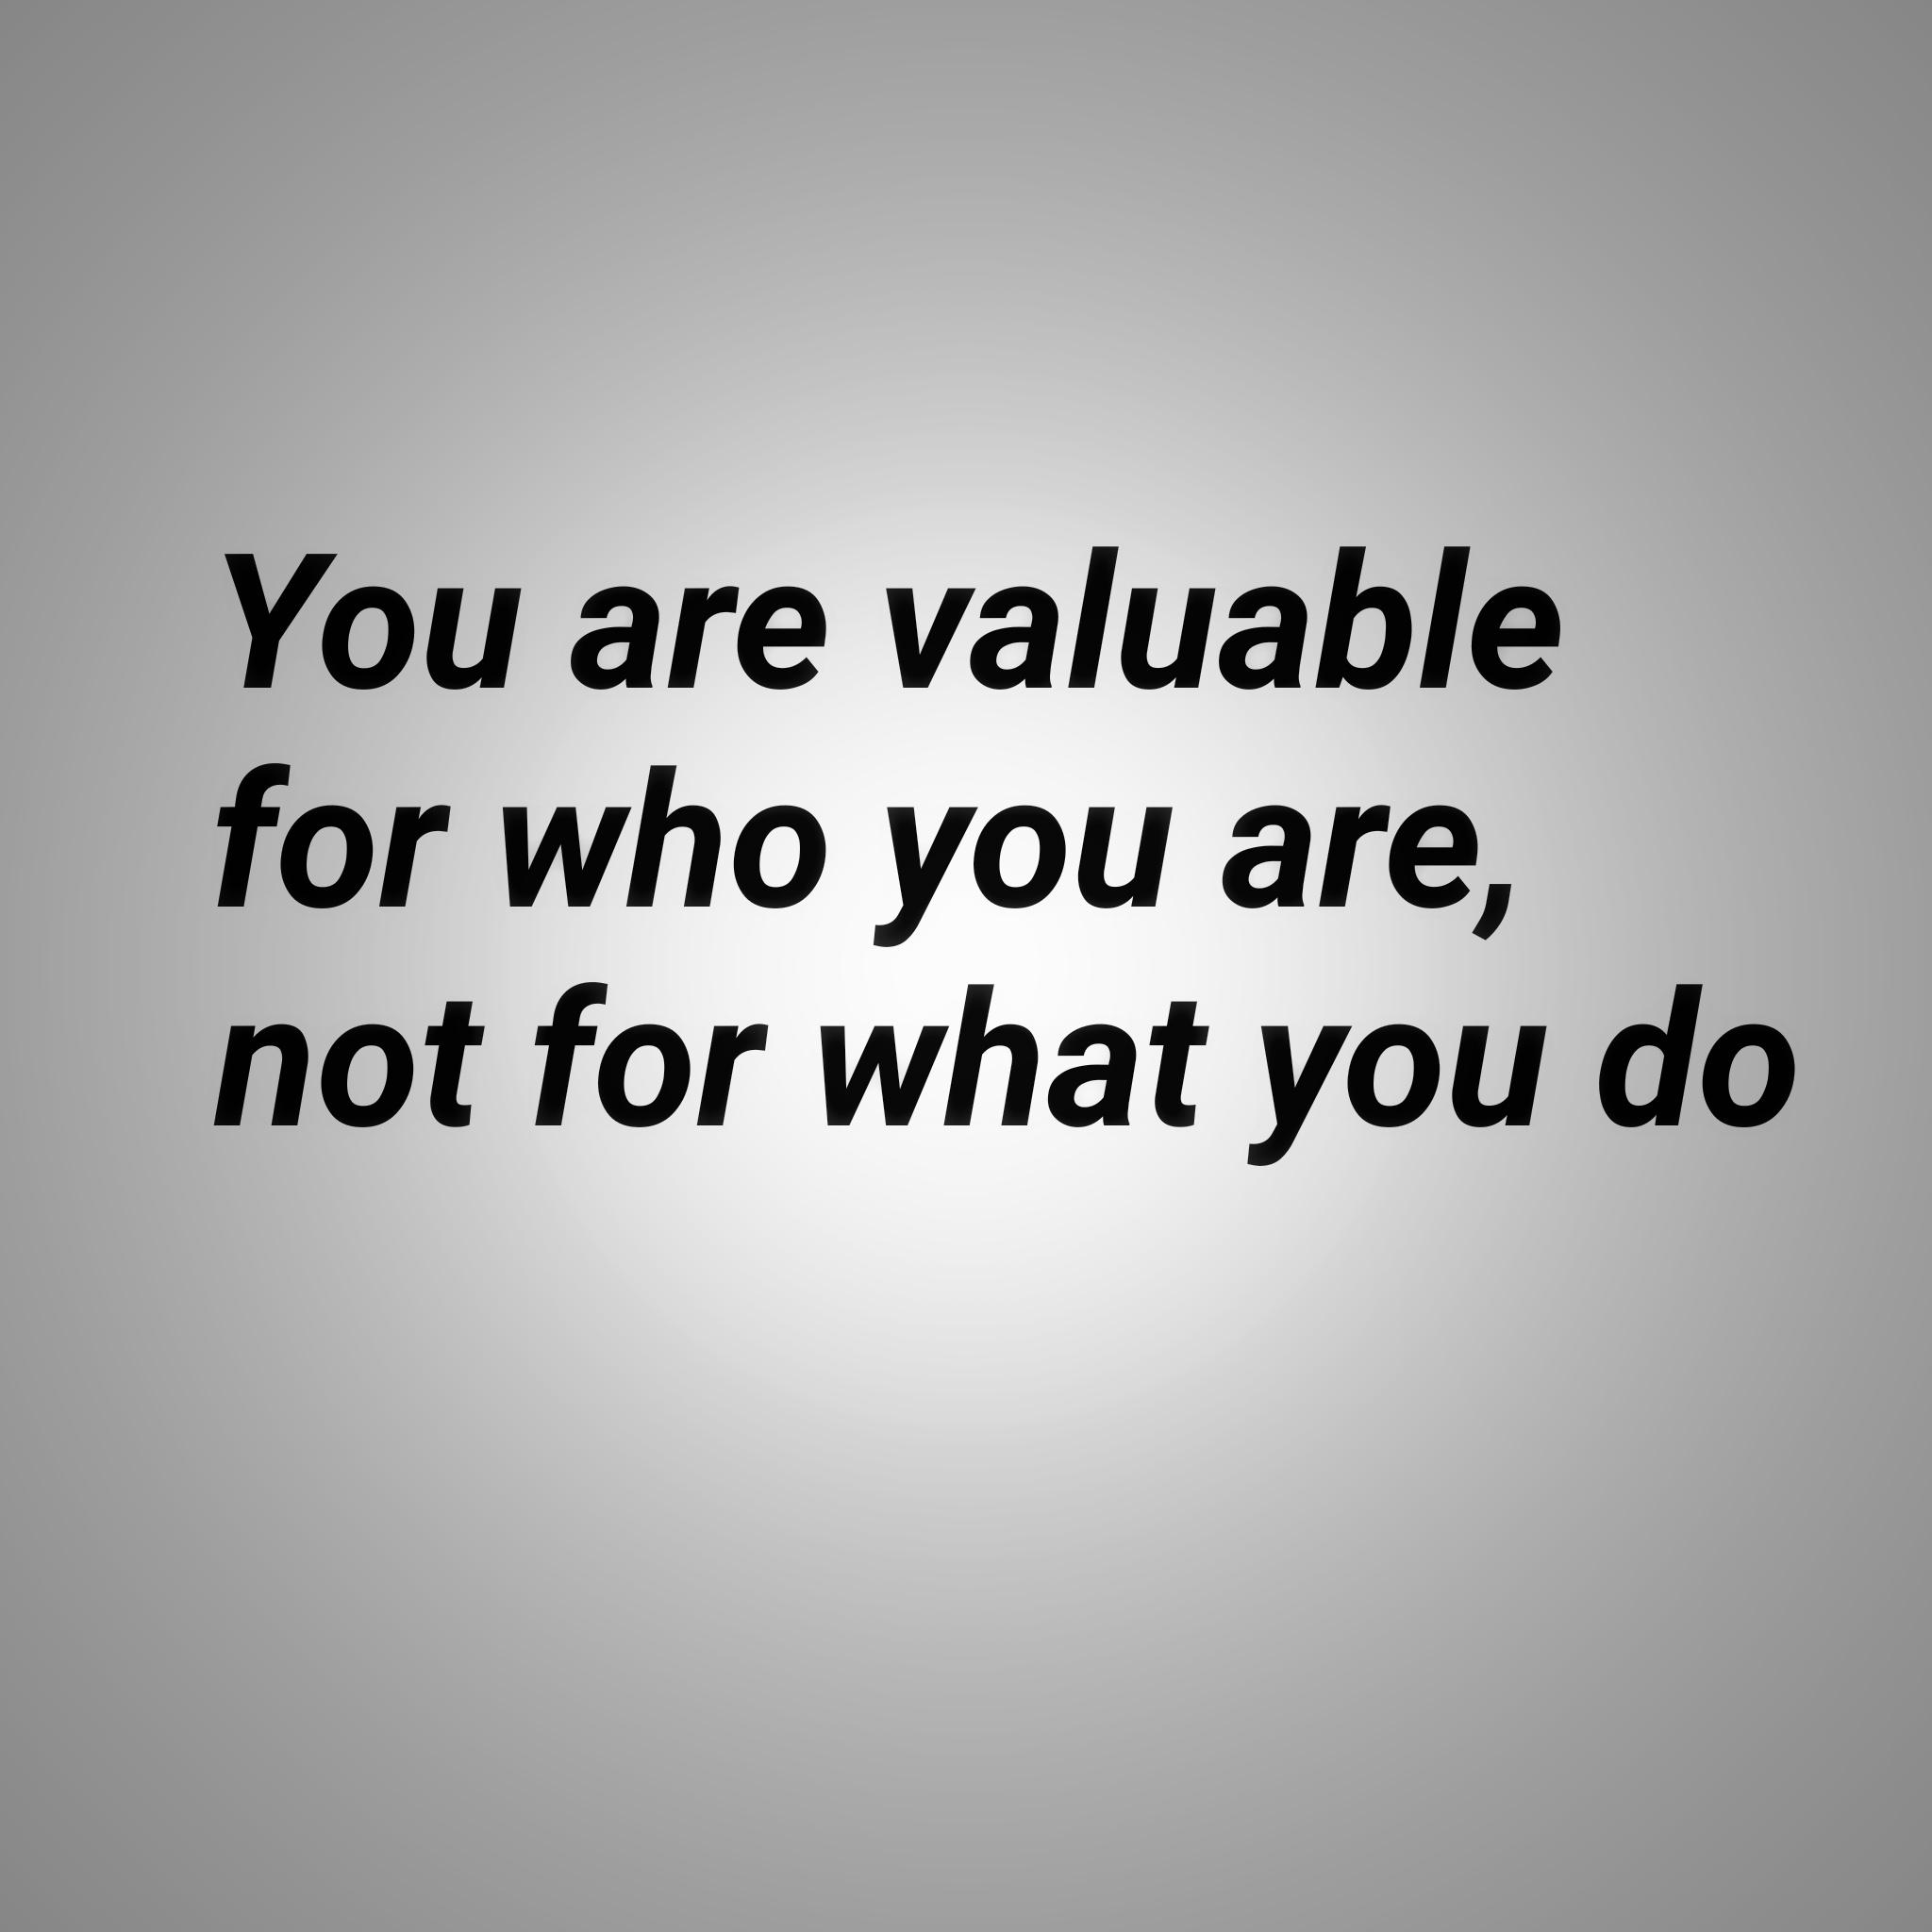 [Image] You are valuable for who you are, not for what you do.